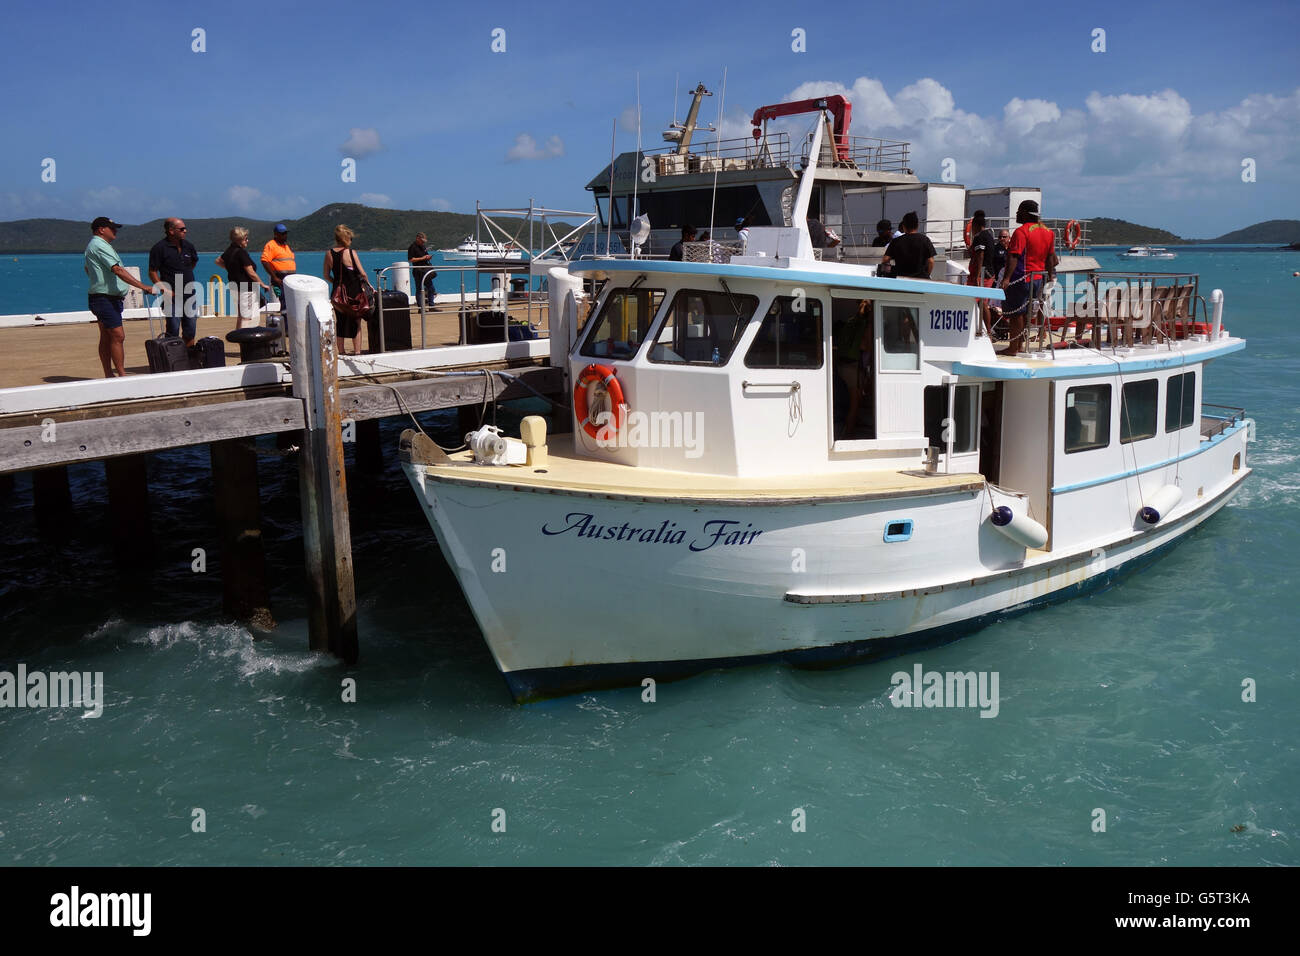 People waiting to board the Australia Fair ferry from Thursday Island to Horn Island, Torres Strait, Queensland, - Stock Image